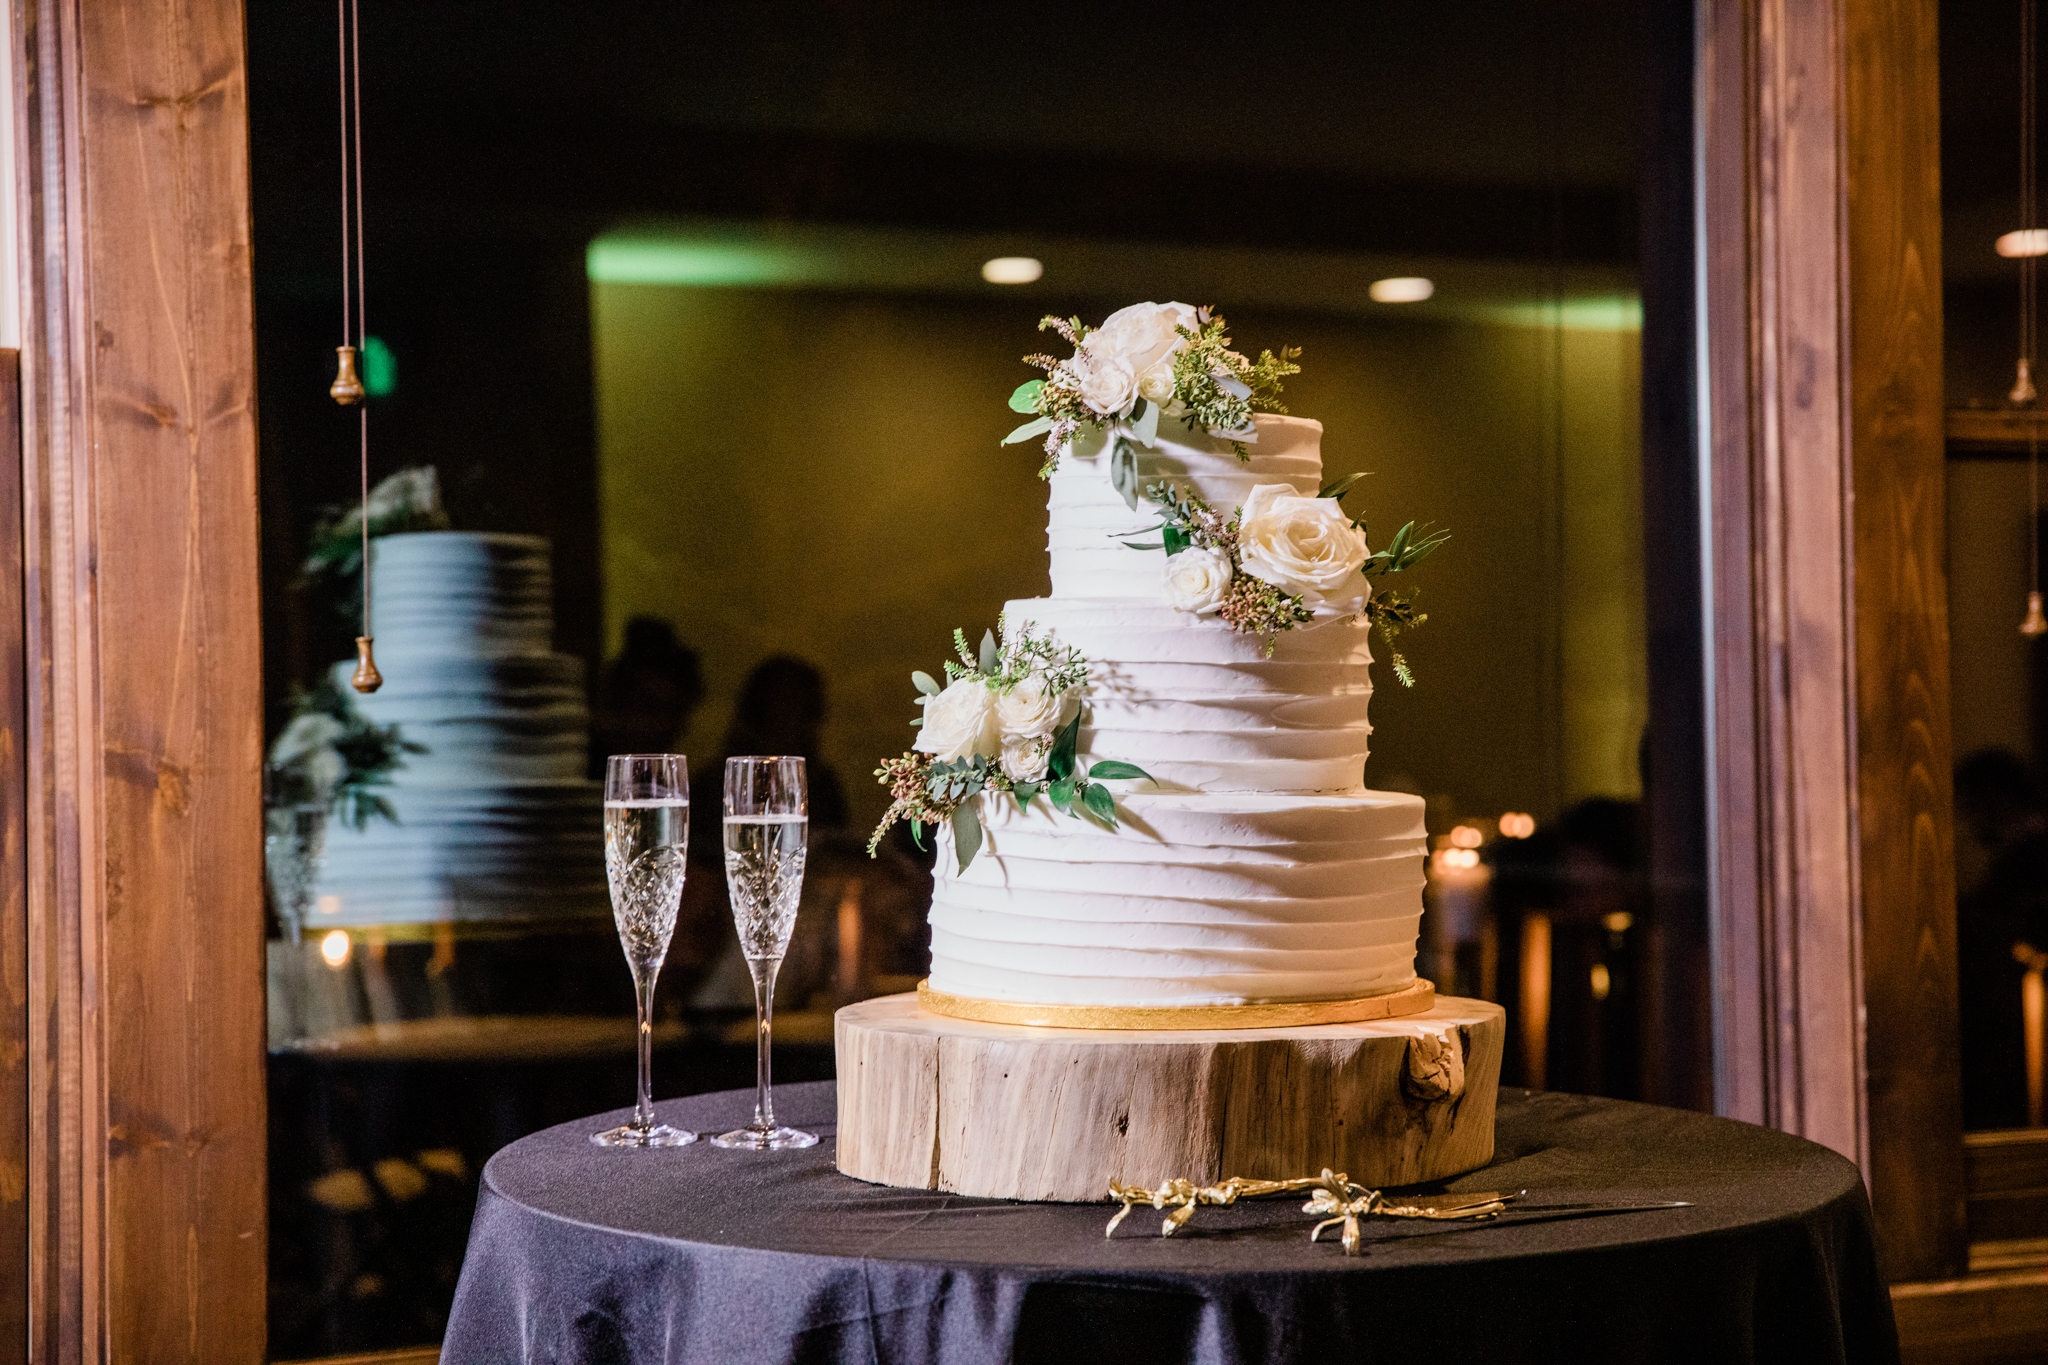 Lodge at Breckenridge Winter Wedding Cake